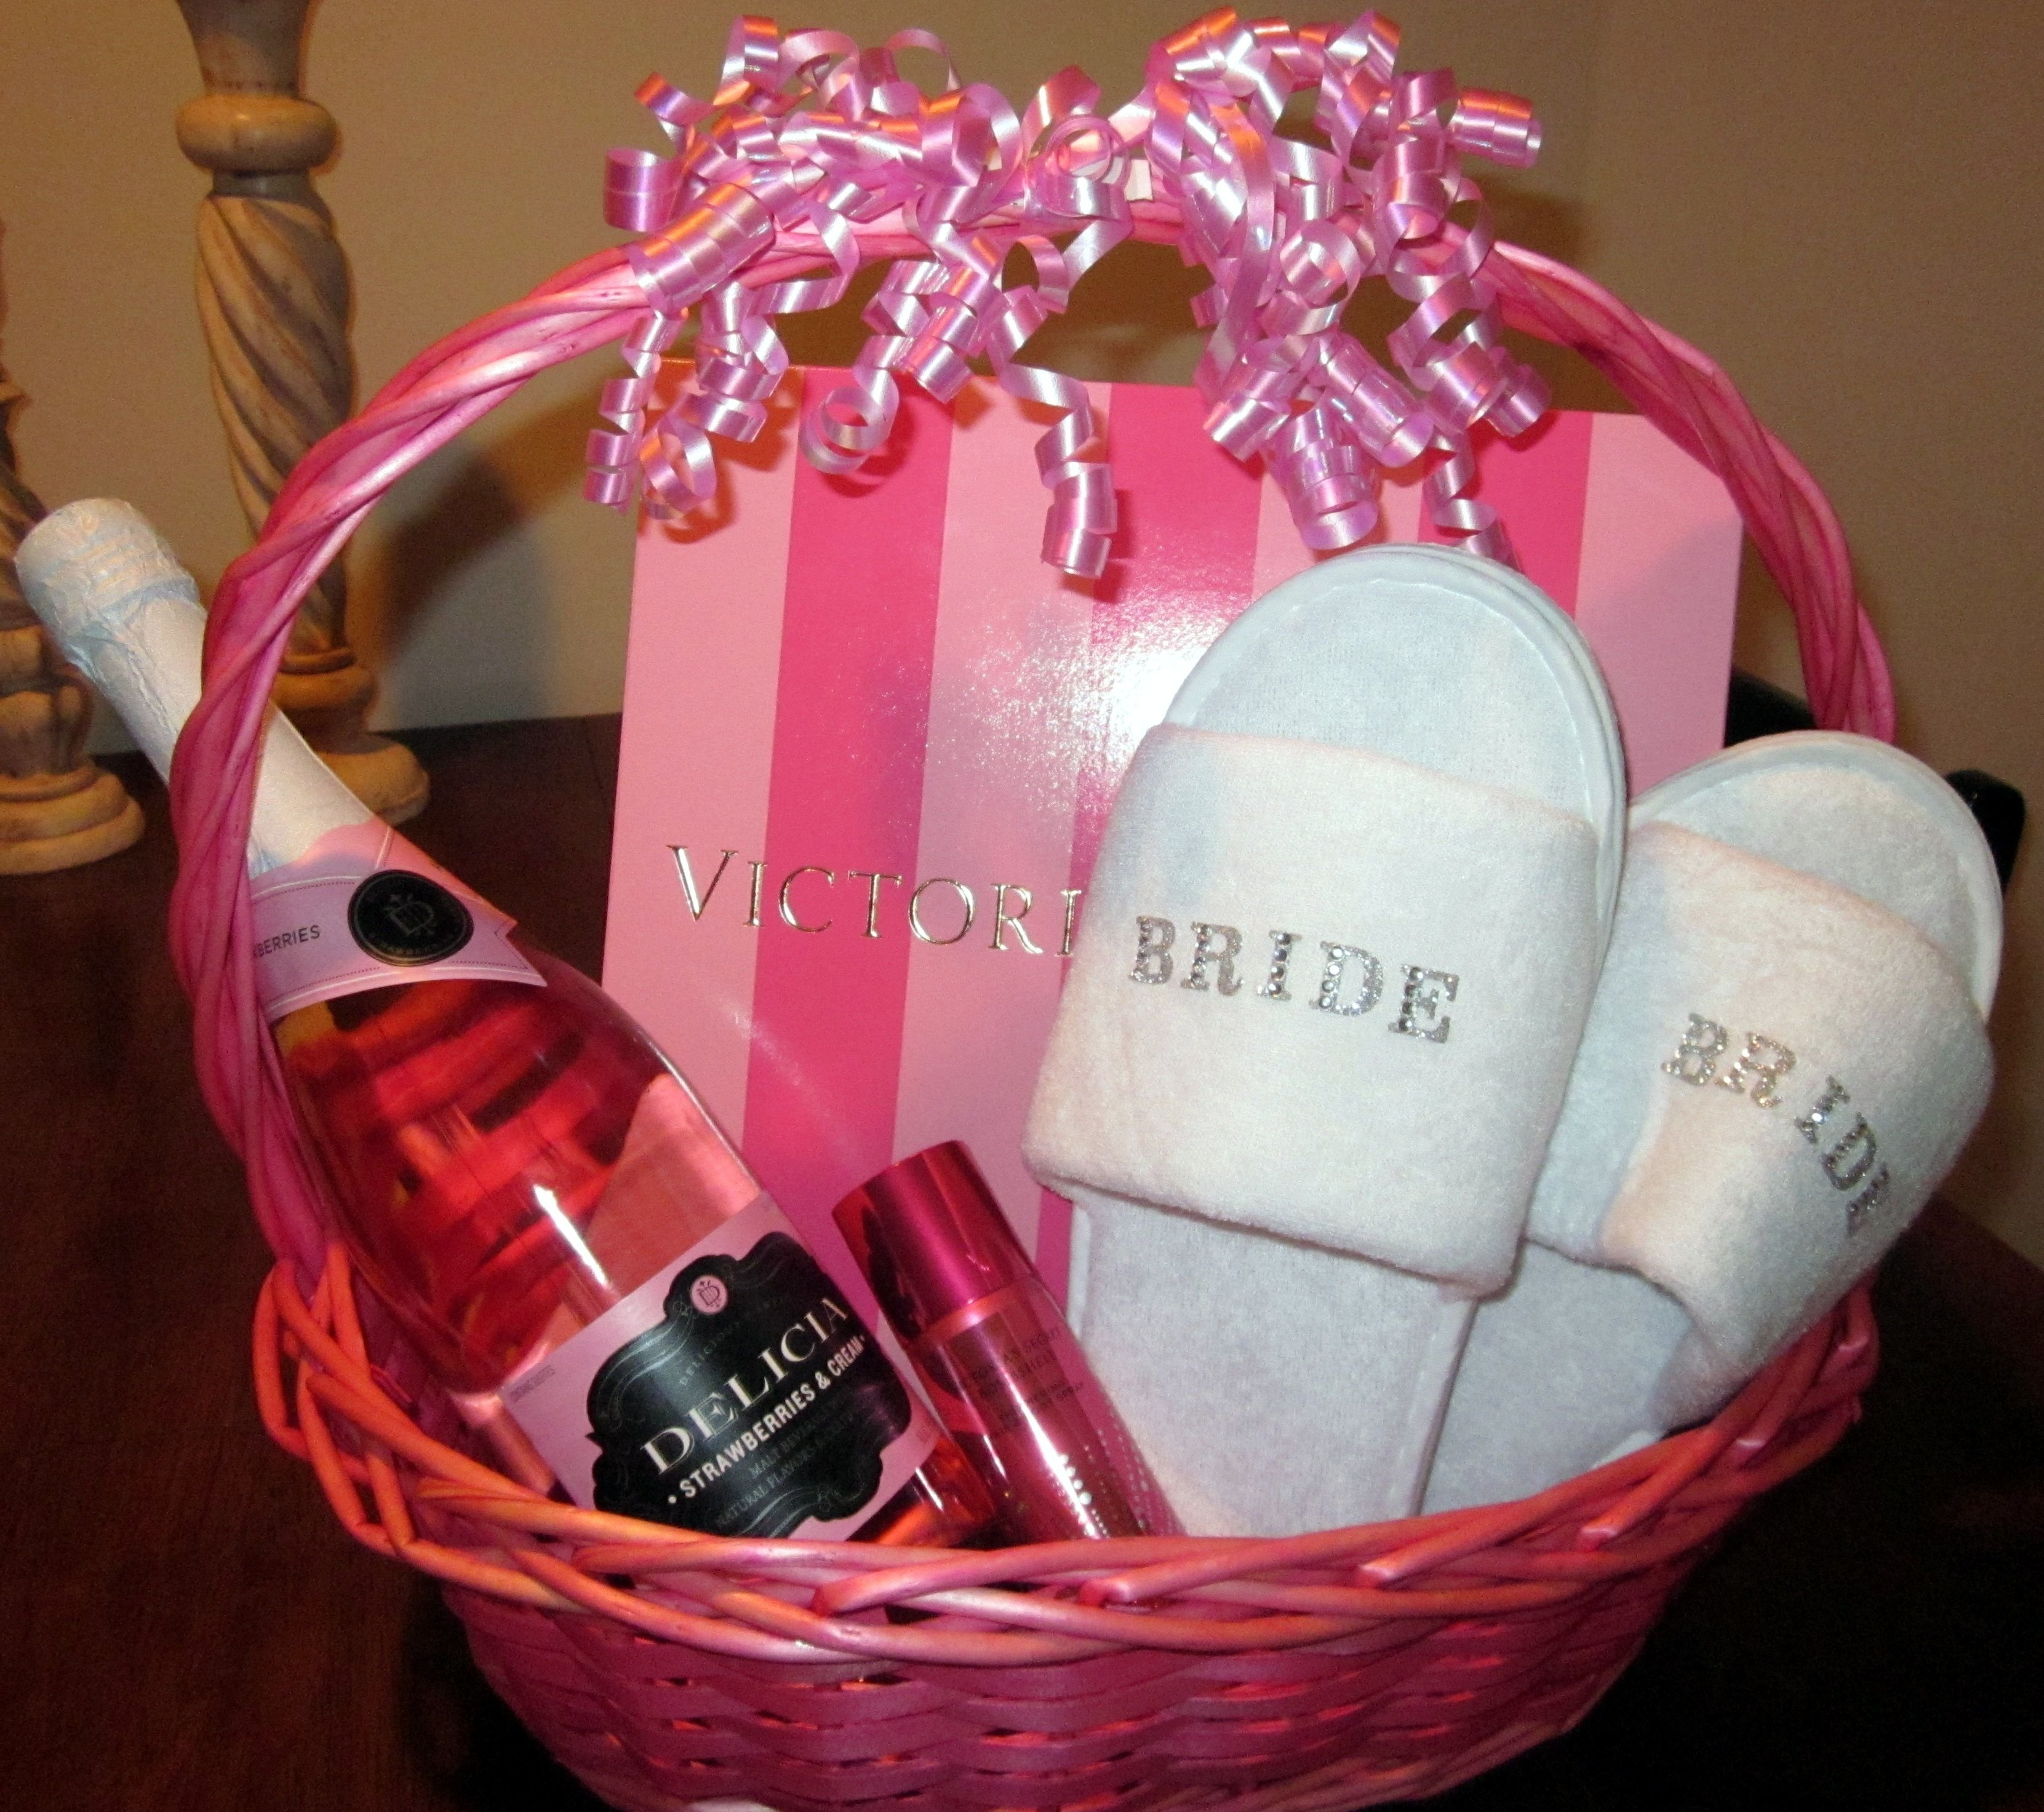 bridal shower gift ideas she'll adore | spa slippers, wedding